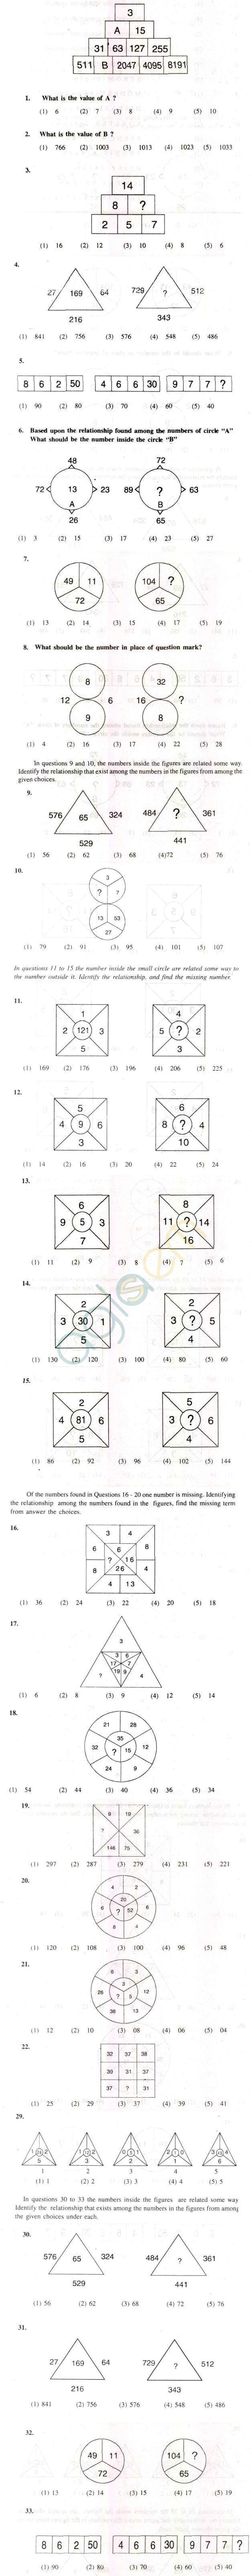 Problems Related to Numbers in Figures